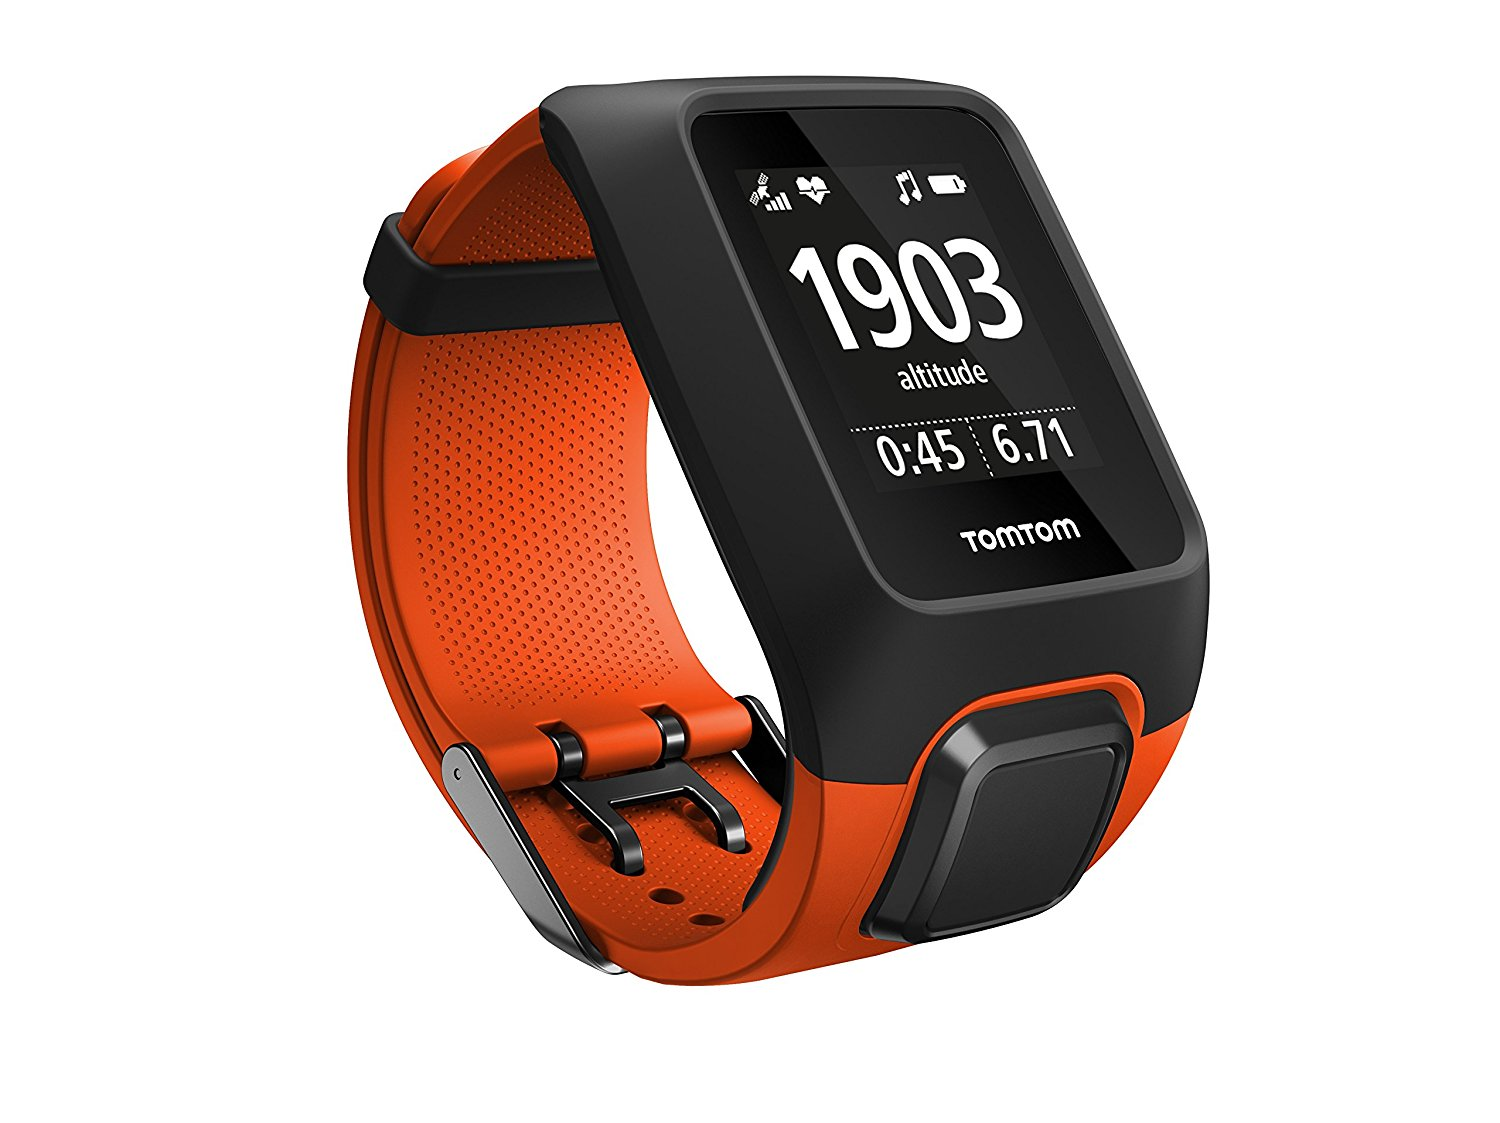 best gps watch for hiking, gps hiking watch, best hiking watch, best adventure watch, adventure watches, best hiking watch 2017, good hiking watch, adventure watches pick of the best, adventure watch reviews, backpacking watch, gps watch for hiking reviews, hiking watch with compass, best backpacking watch, camping watch, best garmin watch for hiking, trekking watches, best watch for hiking and outdoors, best hiking watch under 100, best mountaineering watches, womens hiking watch, best camping watch, watches with altimeter barometer compass thermometer, best adventure watches 2016, gps trekking watch, best watch for outdoor adventure, hiking watch reviews, best smartwatch for hiking, navigation watch, best gps watch 2017 for hiking, hiking gps watch reviews, watches with compass and gps, backpacking gps watch, gps hiking watch reviews 2014, garmin hiking watch, barometer watch, gps map watch, camping watch with compass, best hiking watch 2015, best outdoor watches 2017, altimeter watch, gps compass watch, altitude watch, gps navigation watch, garmin hiking gps watch, best suunto watch, gps walking watch, best outdoor gps watch 2016, gps altimeter watch reviews, garmin altimeter watch, best altimeter watch 2015, garmin watch altimeter gps, best altimeter watch for skiing, best trail running watches 2015, watch with altimeter barometer compass and thermometer, casio hiking watch, mountain climbing watch, navigation wrist watch, hiking watches uk, gps altitude watch, best suunto watch for hunting, best gps watch for hunting, best watch for hiking and running, top gps watches for hiking, suunto core vs casio protrek, best gps watch for outdoors, best watch for ski touring, best outdoor watch with compass, compass altimeter temperature watch, watches with altimeter barometer compass thermometer gps, gps hiking tracker watch, outdoor watches, best outdoor smart watch, best gps map watch, outdoor watches 2017, best outdoor watches 2016, best outdoor watches, suunto traverse vs garmin fenix 3, best watch for hunting and fishing, best gps watch for fishing, best hiking watch under 200, top outdoor watches 2017, suunto solar, gps watch, gps running watch, best gps watch, best running watches, garmin running watch, garmin gps watch, best smartwatch for running, best gps running watch, gps heart rate watch, best running watches 2017, sport watch, garmin watch comparison, running watches, garmin watch reviews, forerunner 35 vs 235, garmin forerunner 35 vs vivoactive hr, garmin forerunner 15 vs 25, best garmin running watch, best gps running watch 2016, best gps watch 2017, best running watch 2017, best garmin watch, garmin gps running watch, cheap running watches, best running watches 2016, running watch reviews, running watch with music, womens running watches, gps watch reviews, gps running tracker, best sports watch 2017, best gps watch running 2016, running tracker watch, top running watches, best fitness watch for running, best womens running watches, best running watches runners world, running gps watch 2017, top gps watches, good running watches, garmin running watch reviews, training watches